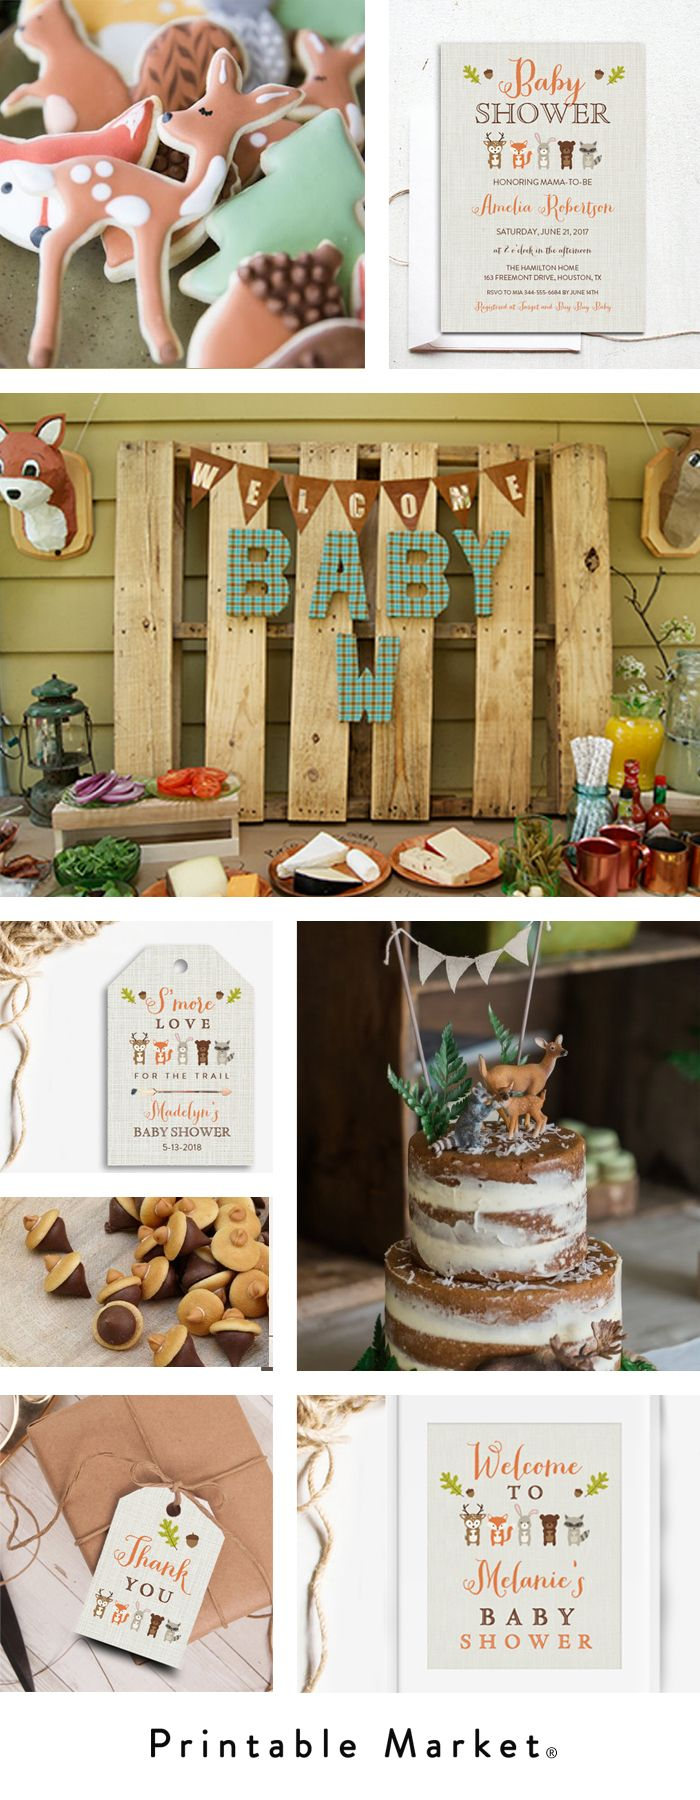 Woodland Fox Baby Shower Inspiration - Printable Market